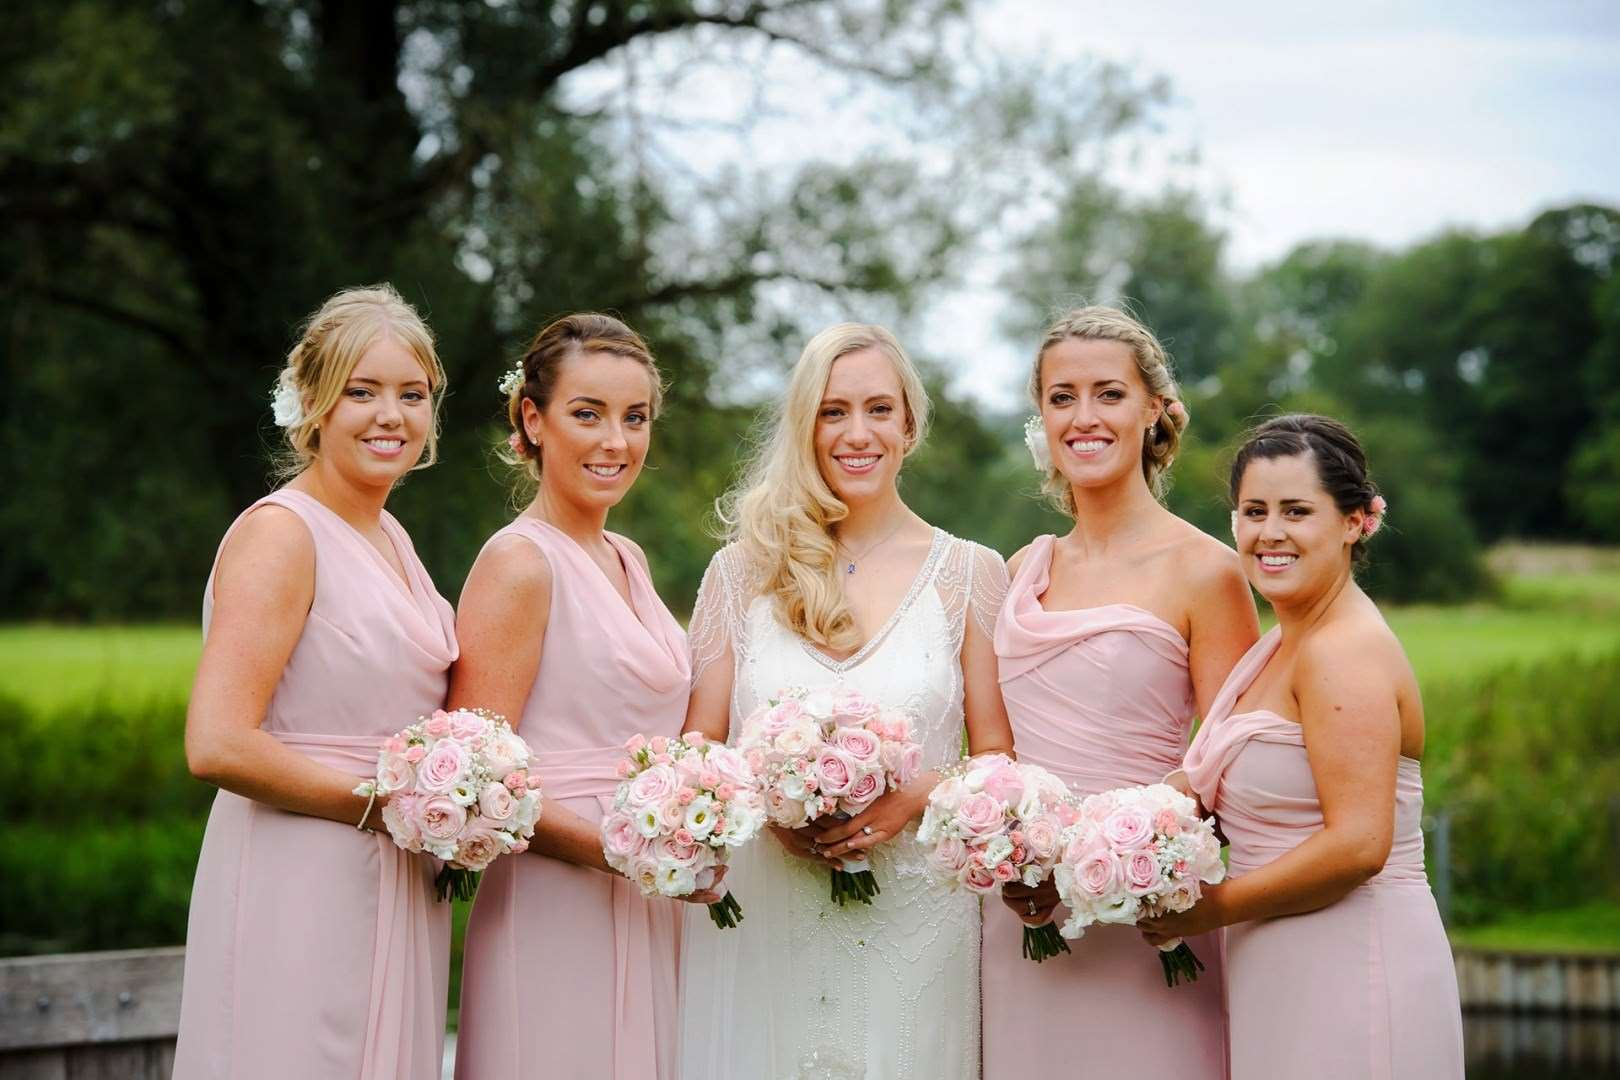 Choose the right dresses for your bridesmaids